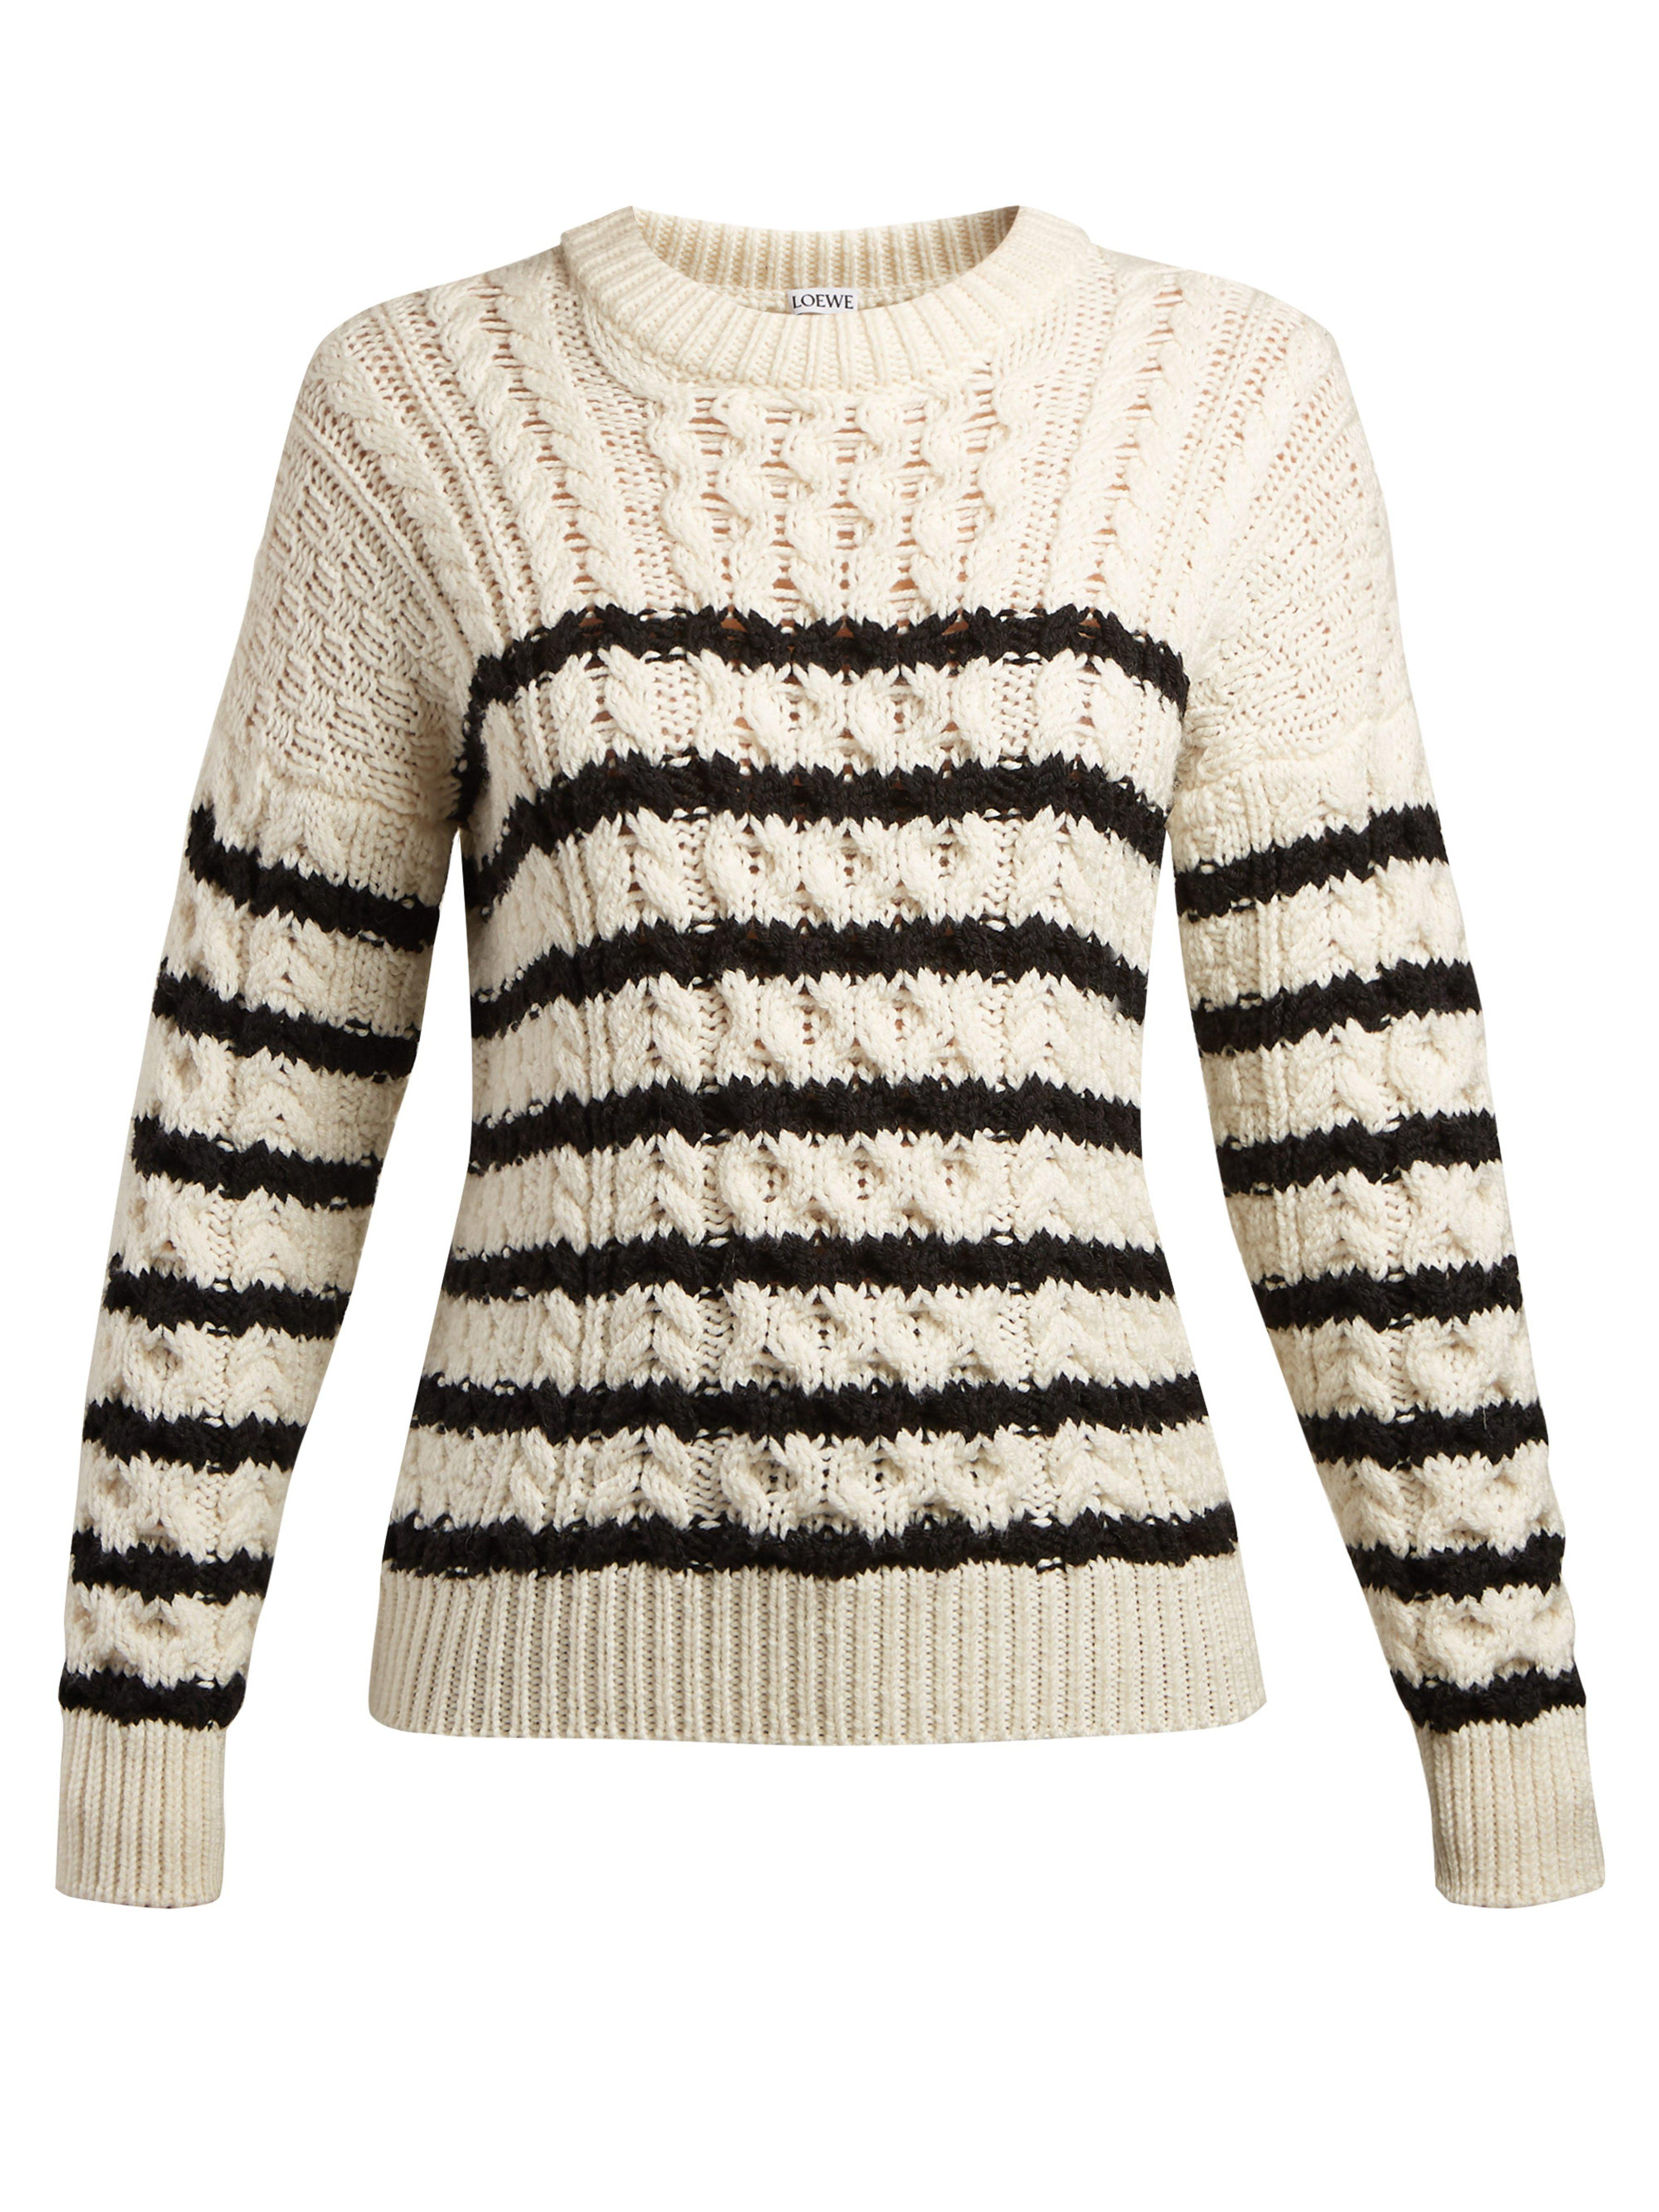 1bb8c2afbb Loewe Striped Cable Knit Sweater in Black - Lyst